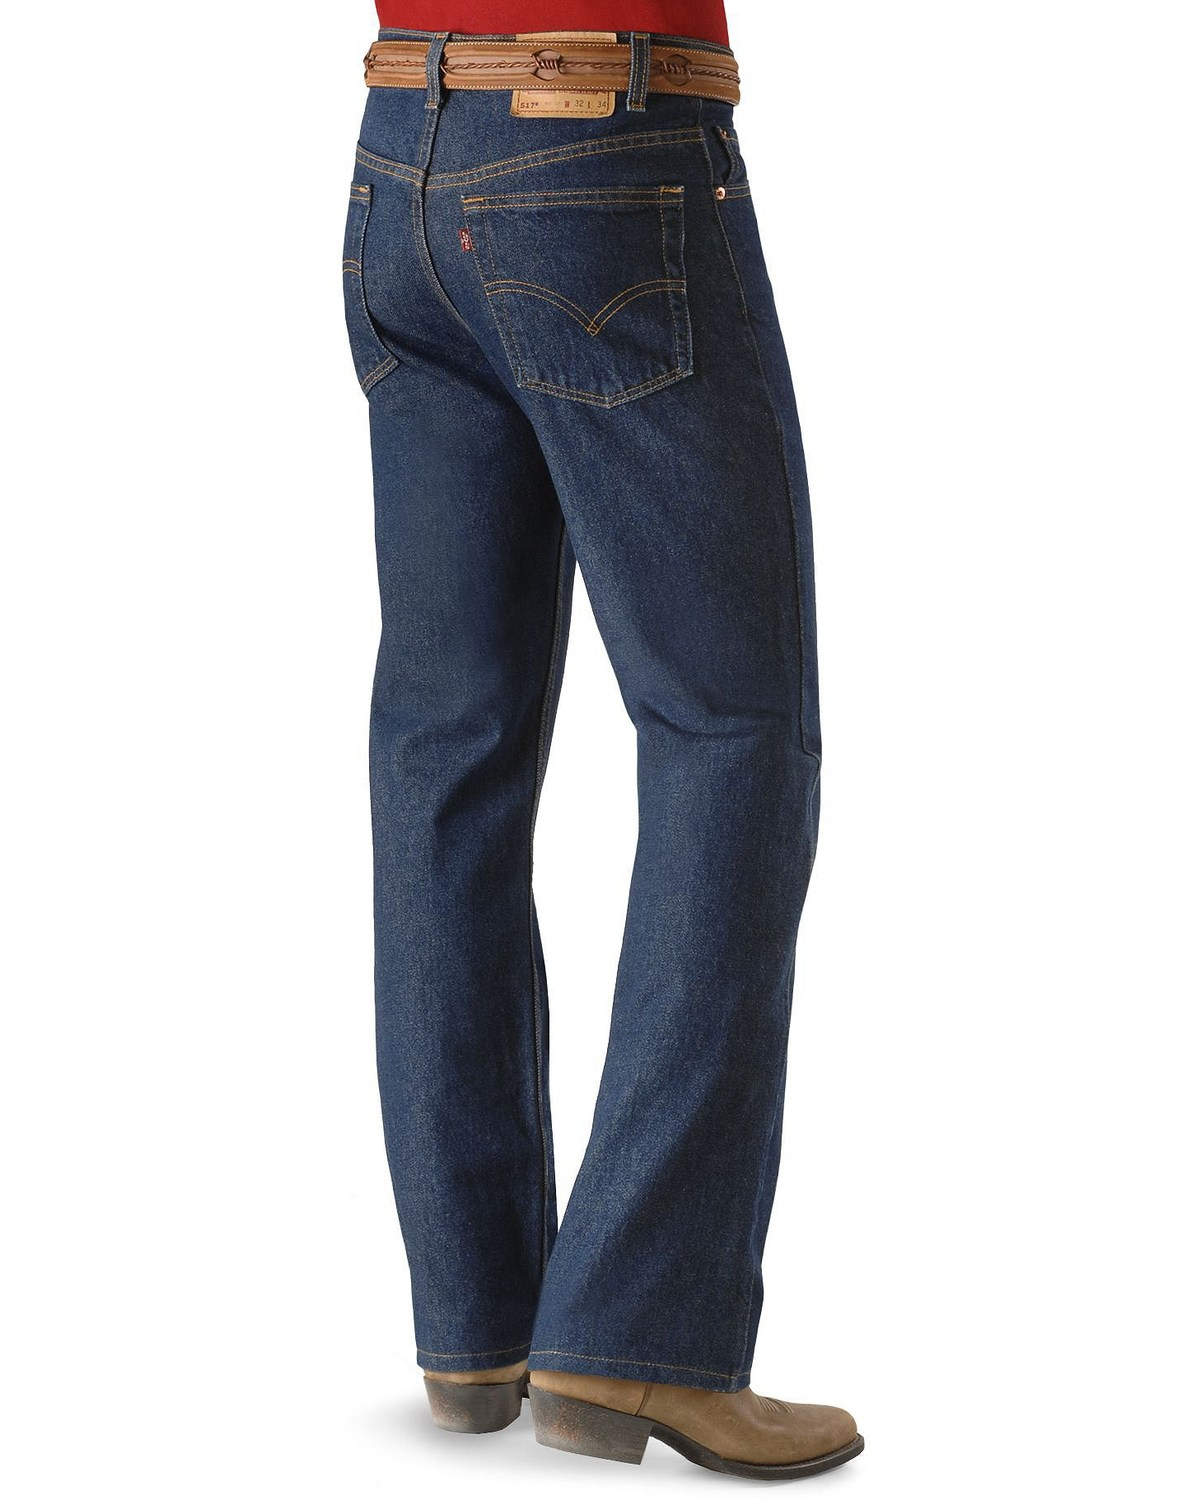 a79689e38cf Zoomed Image Levi's Men's 517 Boot Cut Jeans - 44